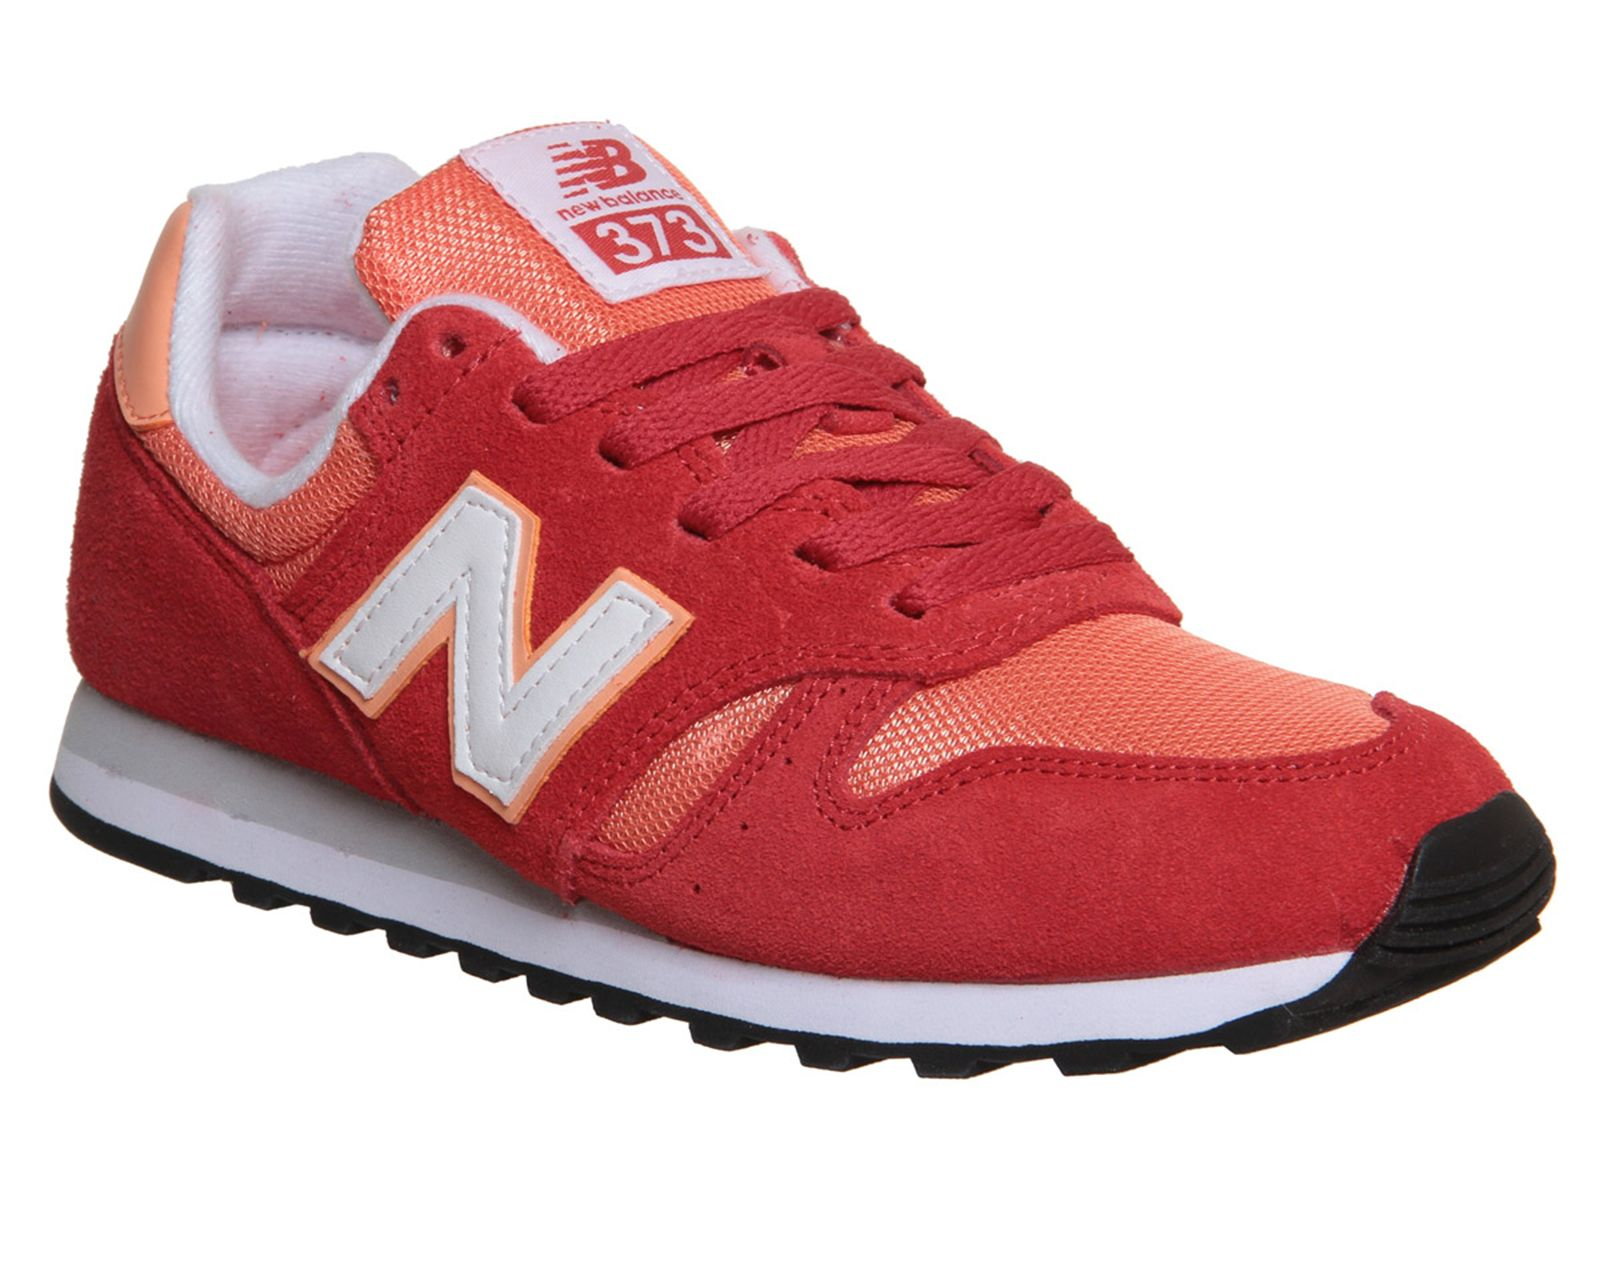 new products 9623b 9dcaf New Balance 373 red/peach, women's | SneakerHeart | Orange ...